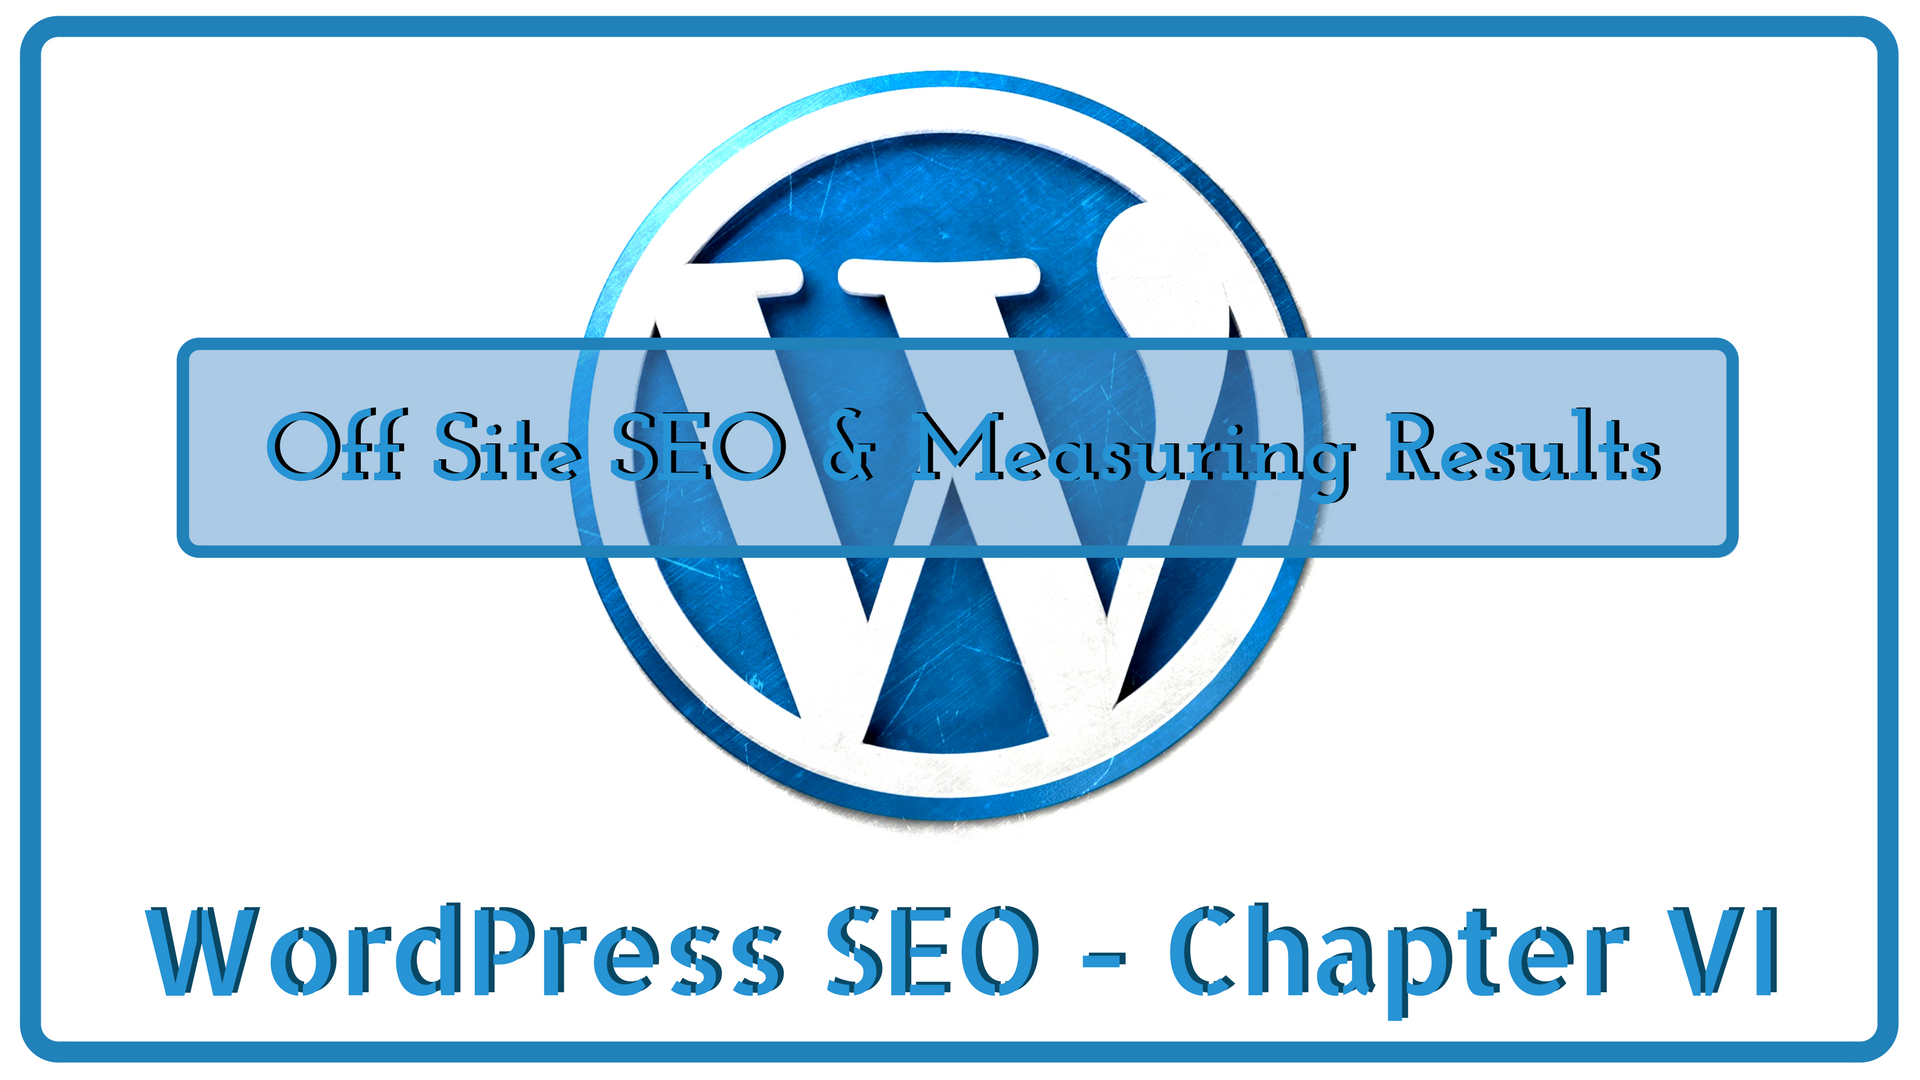 Guide To Search Engine Friendly WordPress Optimization off site seo & measuring results